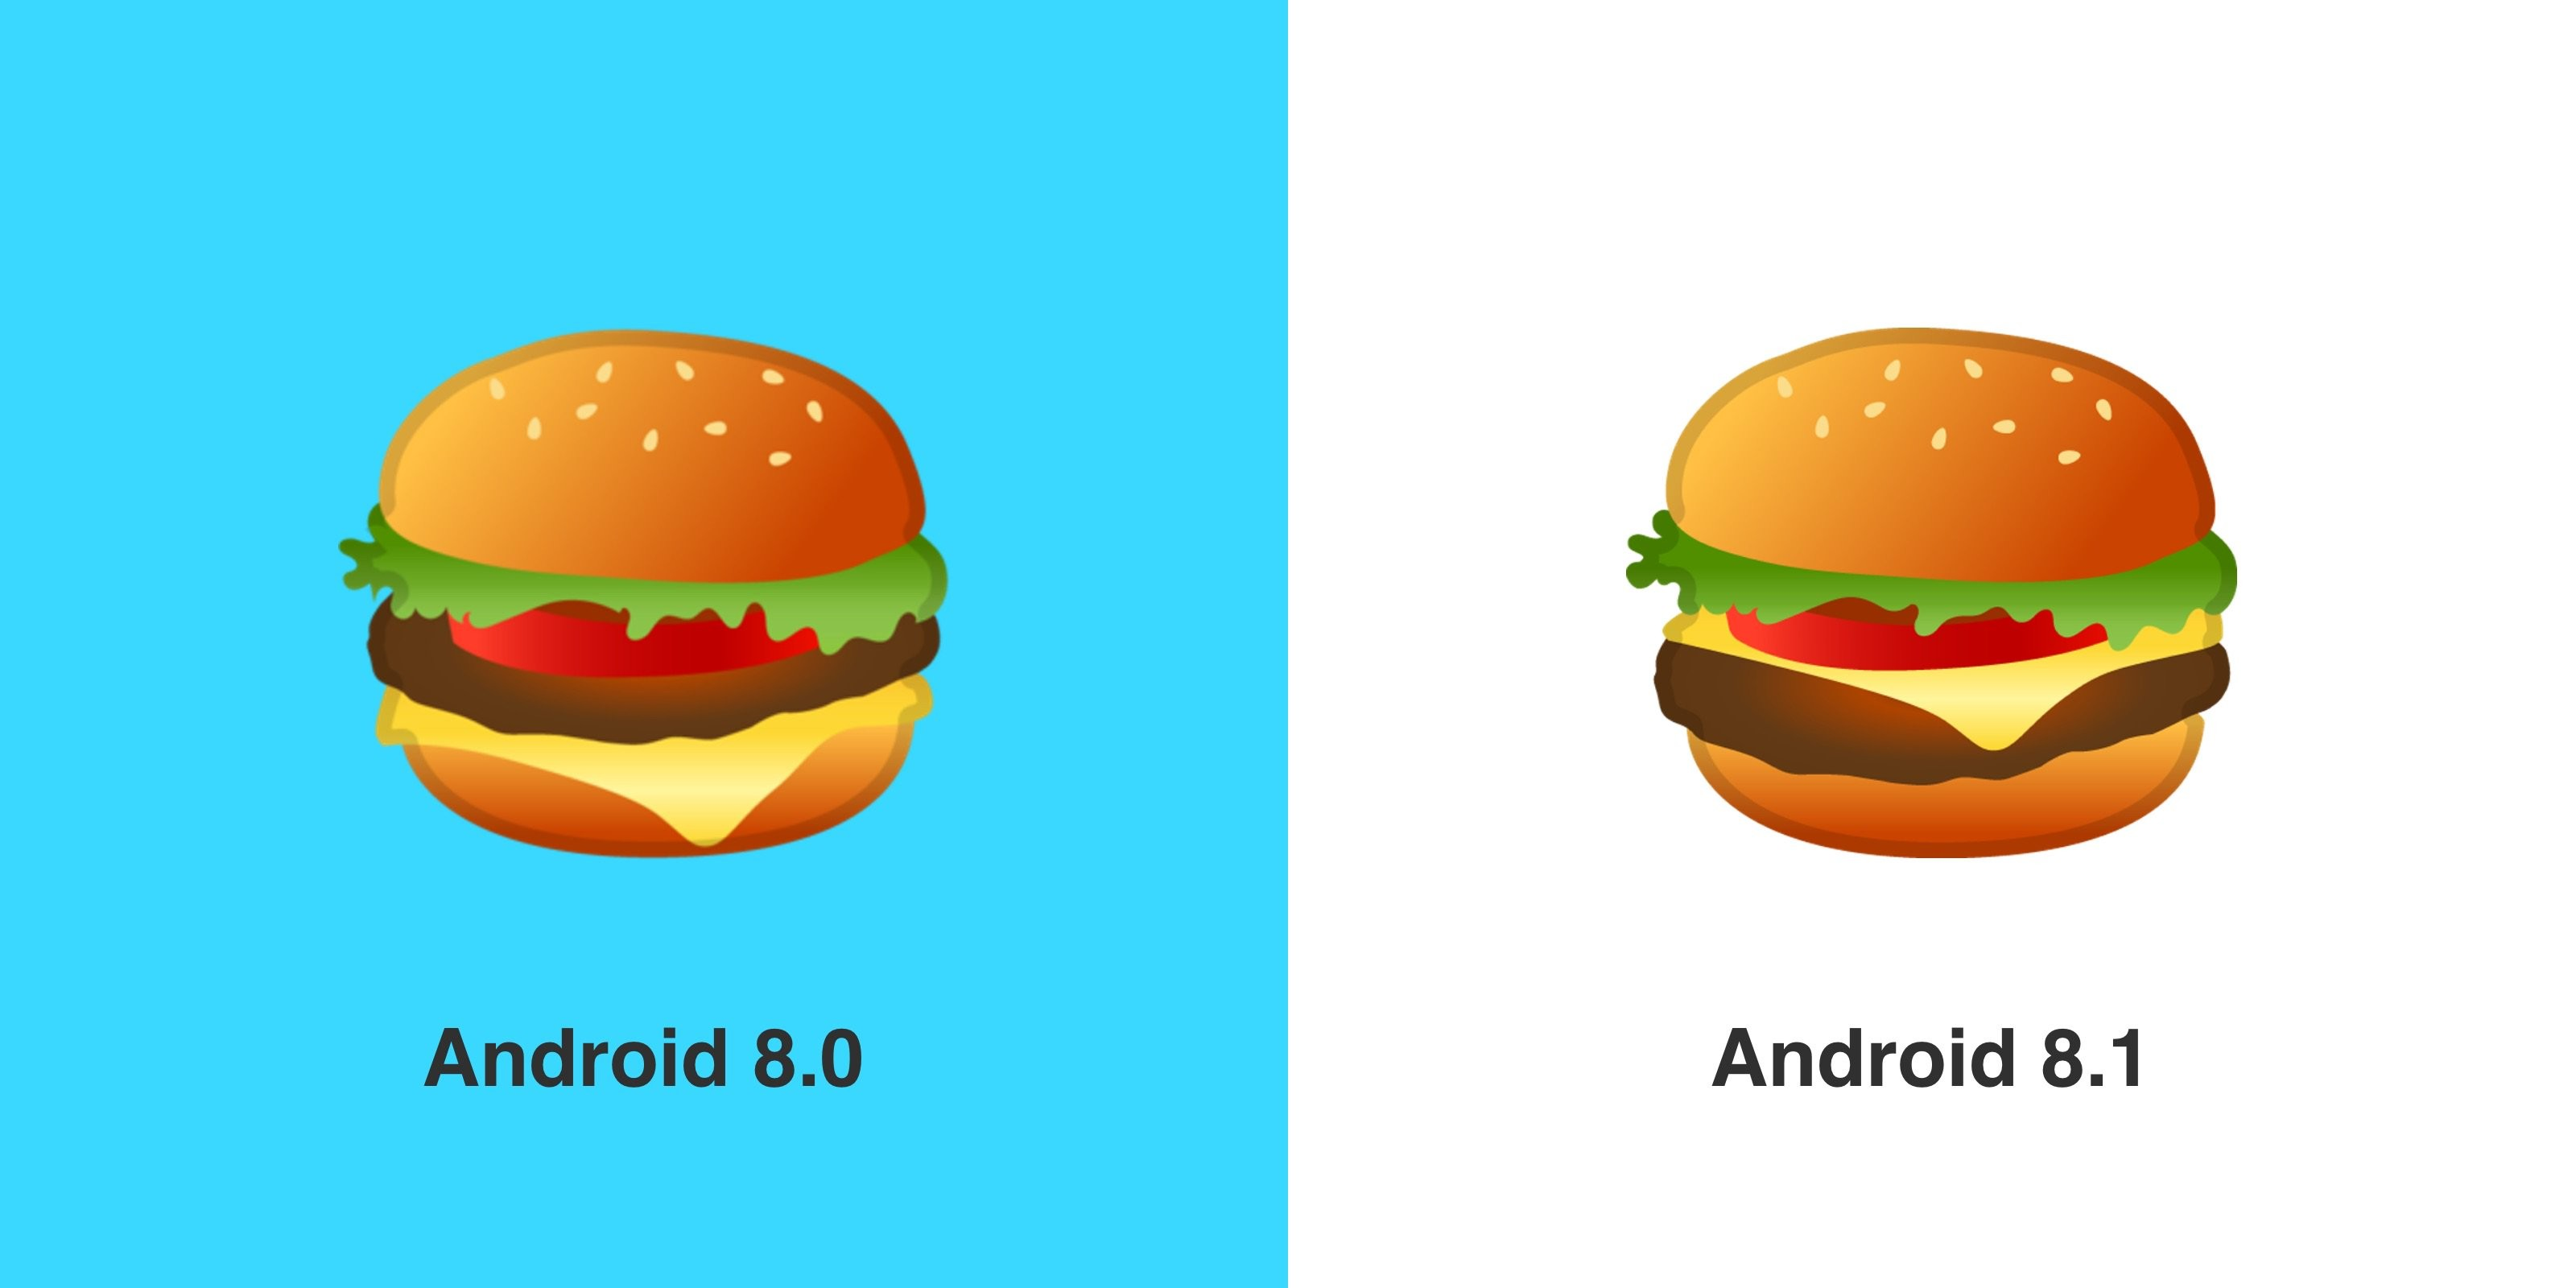 Google fixes hamburger emoji after uproar